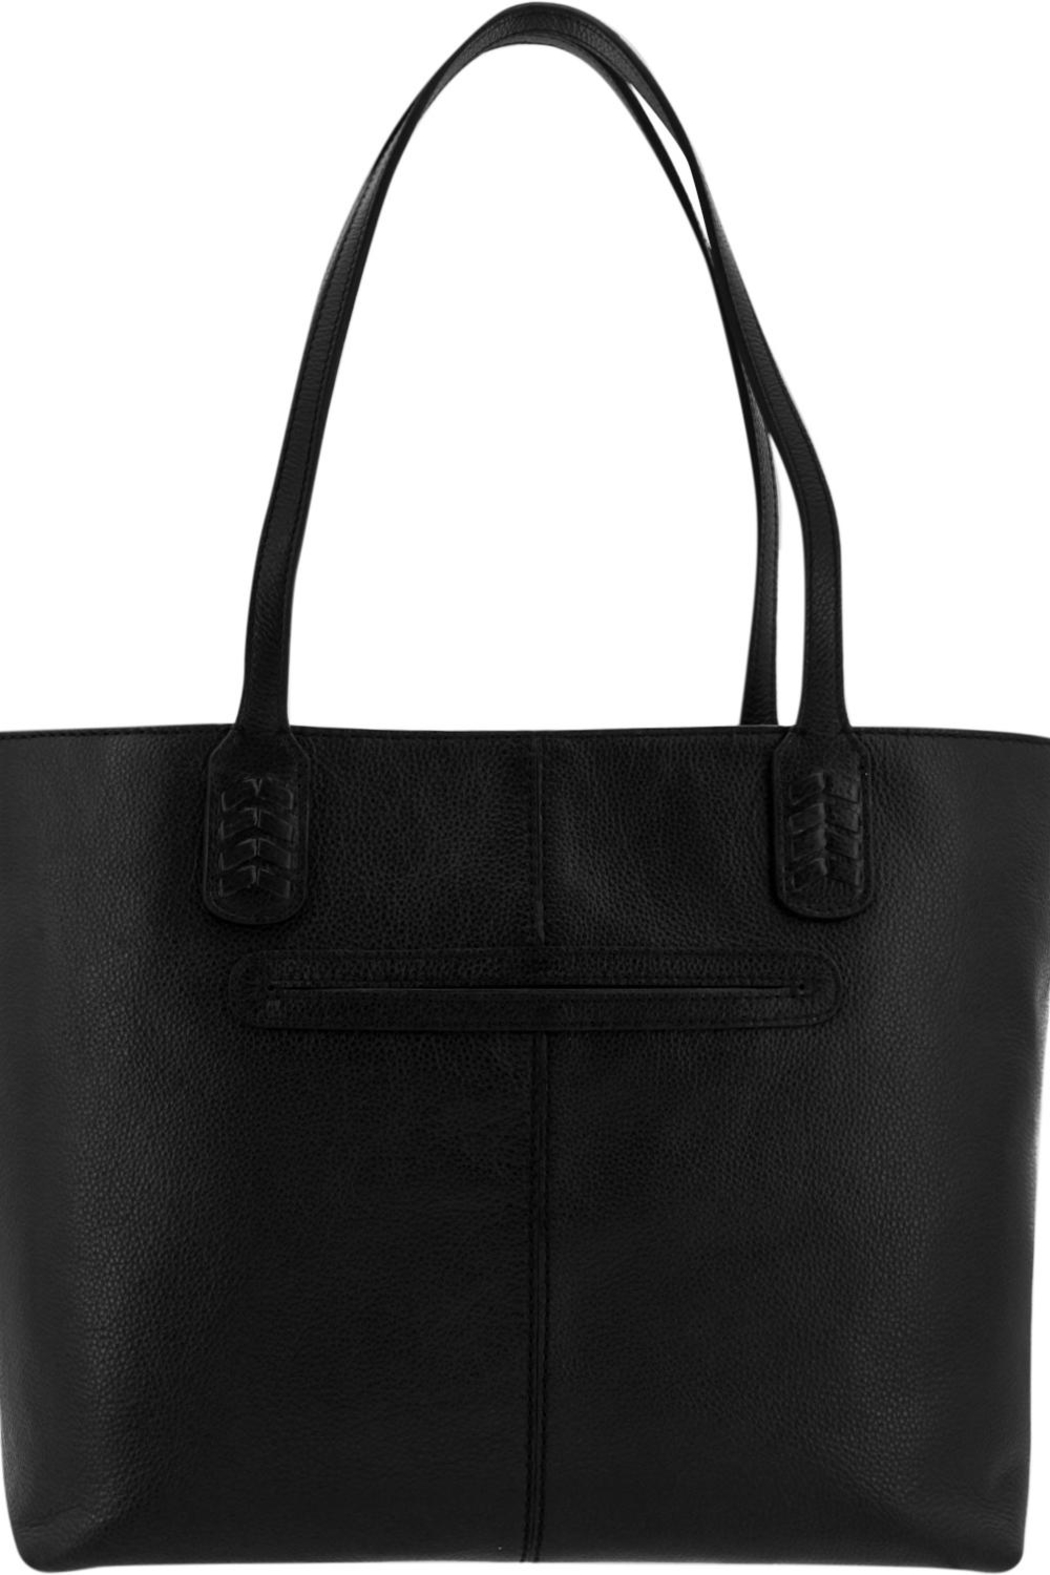 043937862cb1 Brighton Reed Soft Tote from Illinois by Basket Case Boutique ...